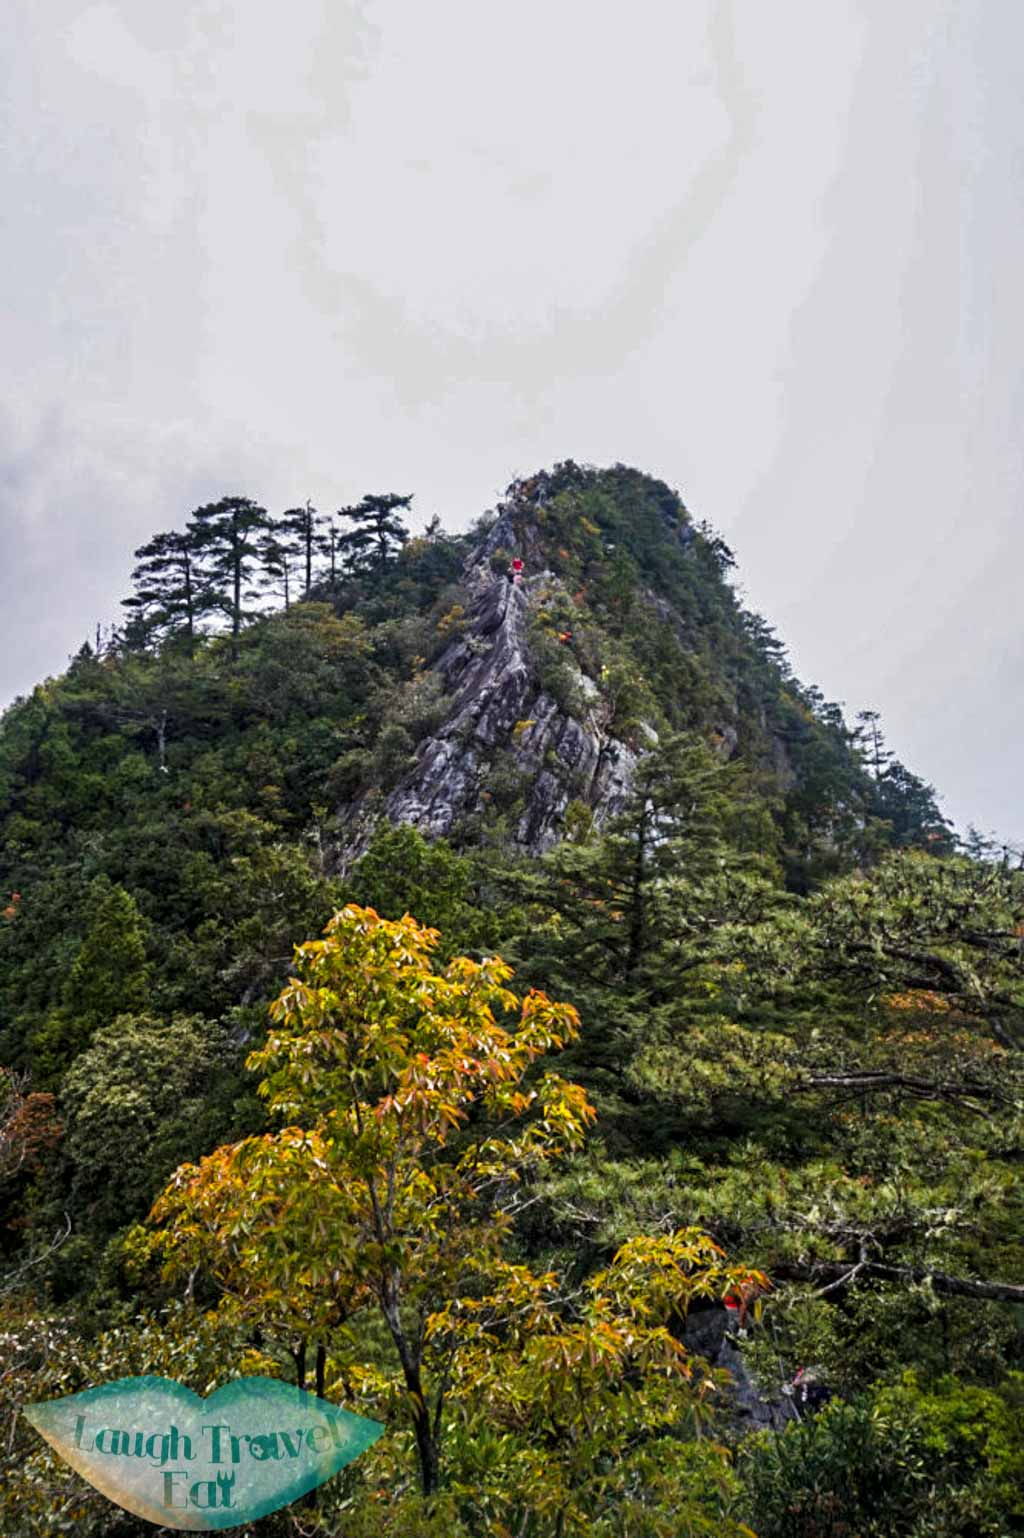 Looking back at descend from peat at Yuan Zui Mountain in Dasyueshan National Forest Recreational Area, Taichung - Laugh Travel Eat